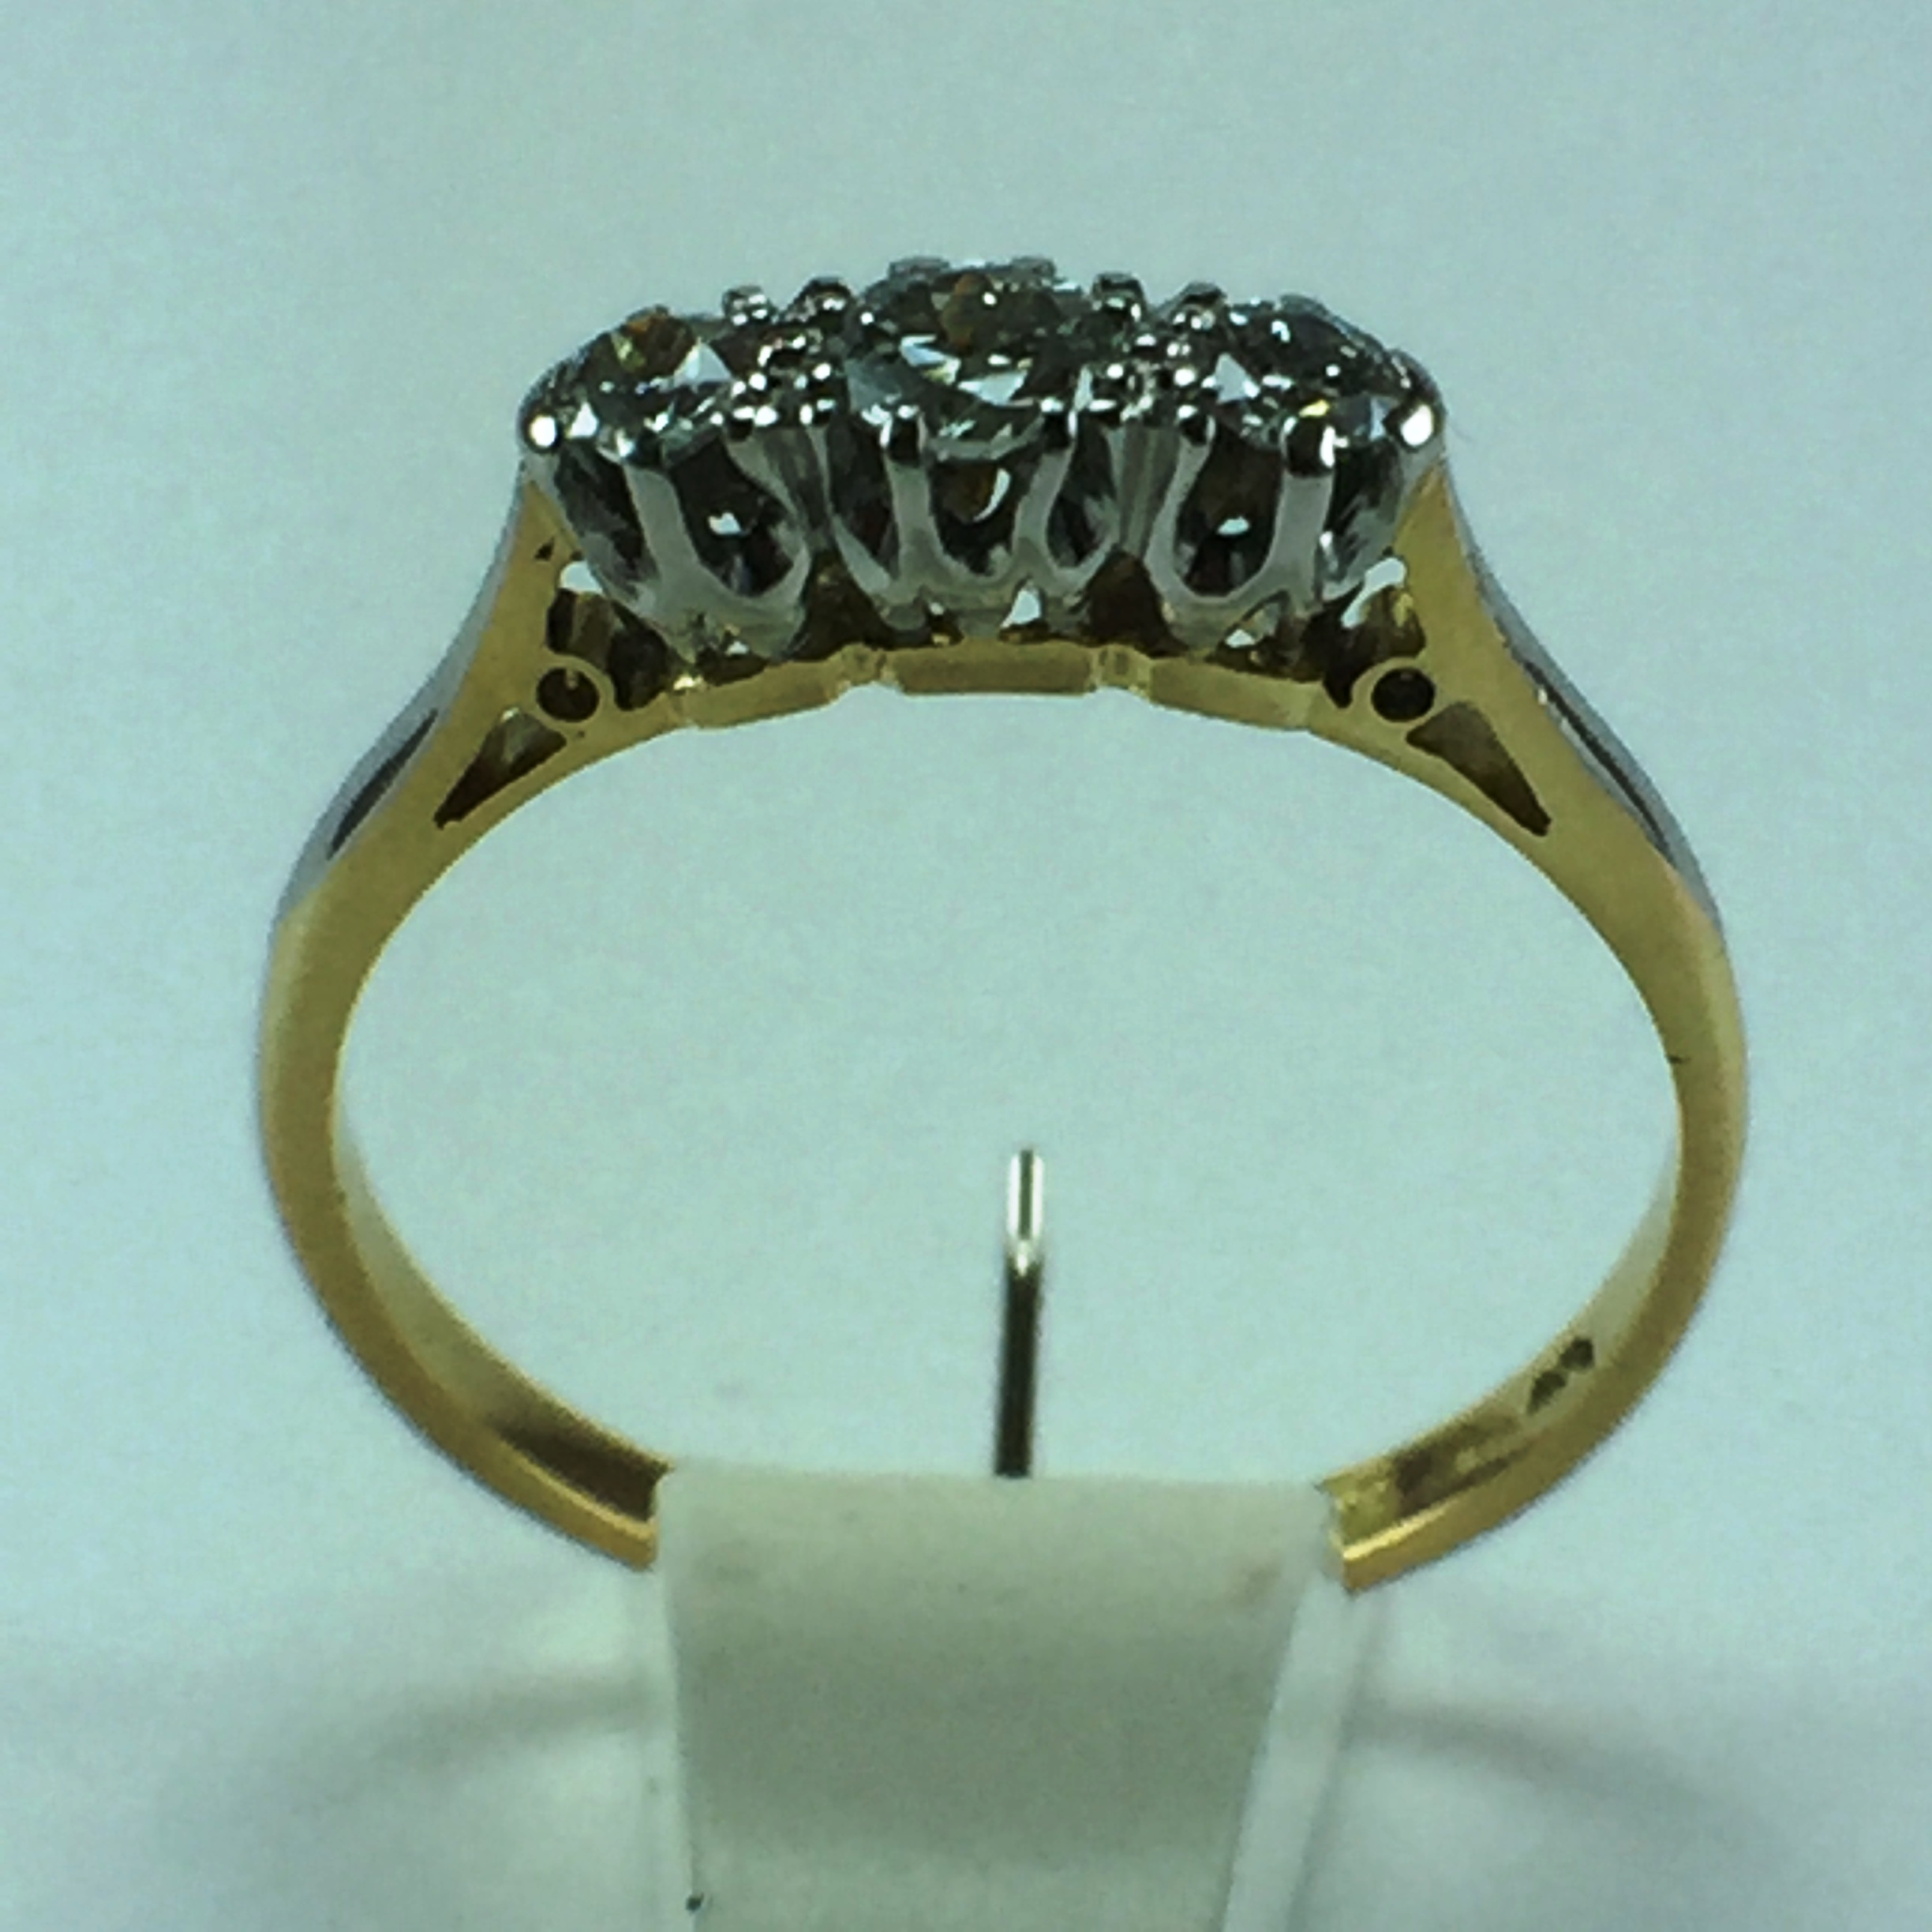 reticulated hand set rings buy m made band wedding matching and custom his crafted crazyassjewelry gold promise by silver